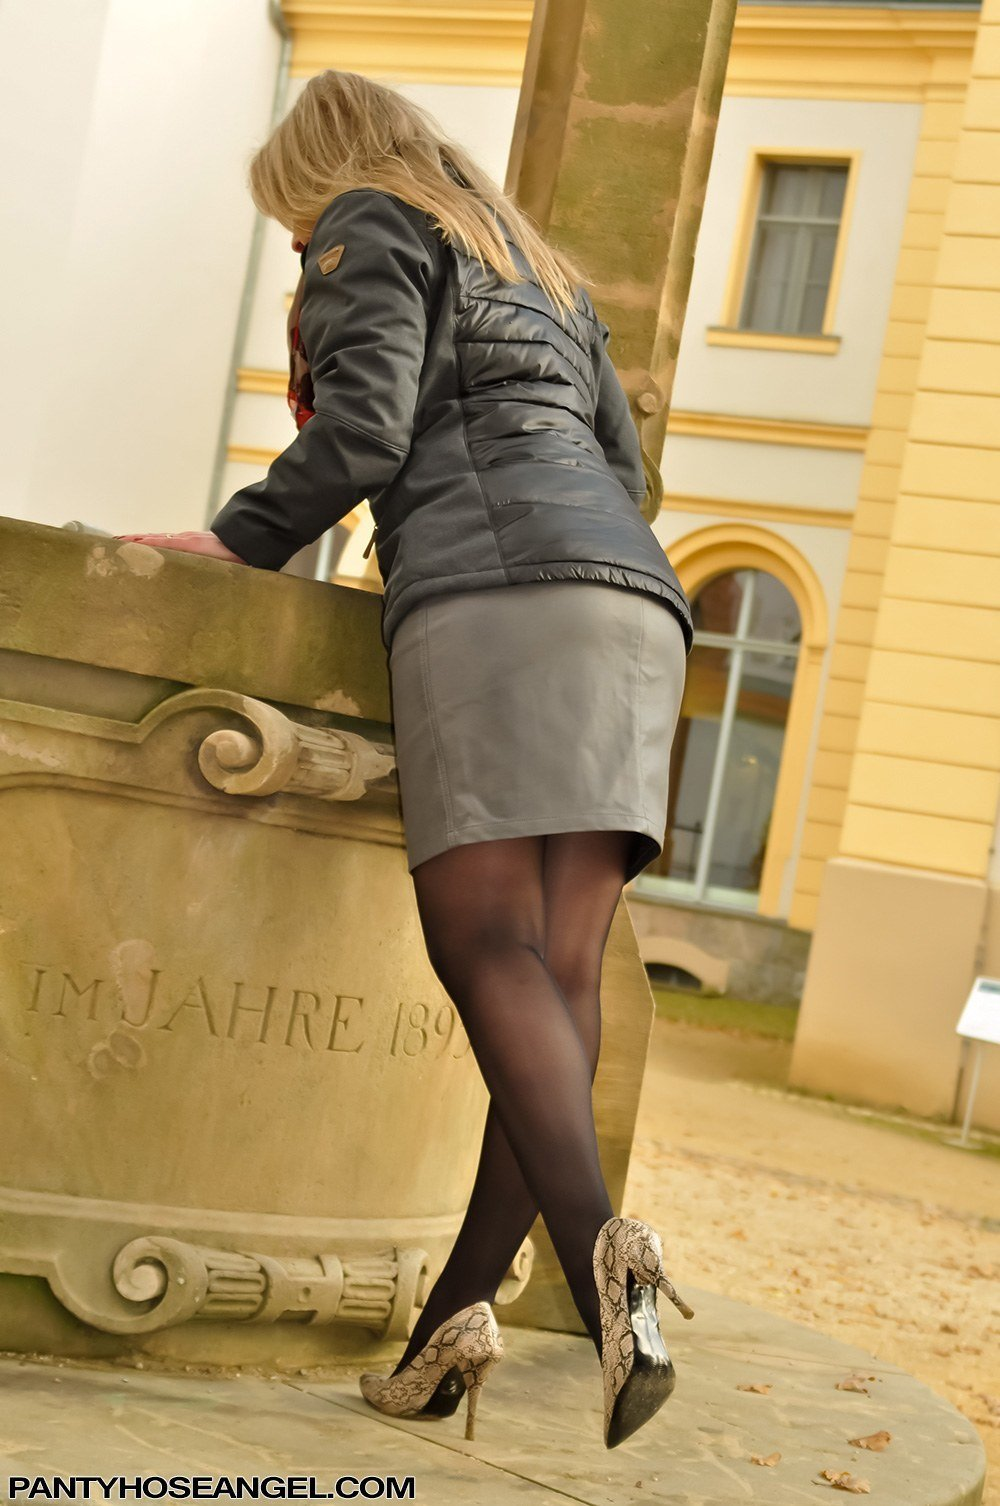 Mature feet in pantyhose apologise, there